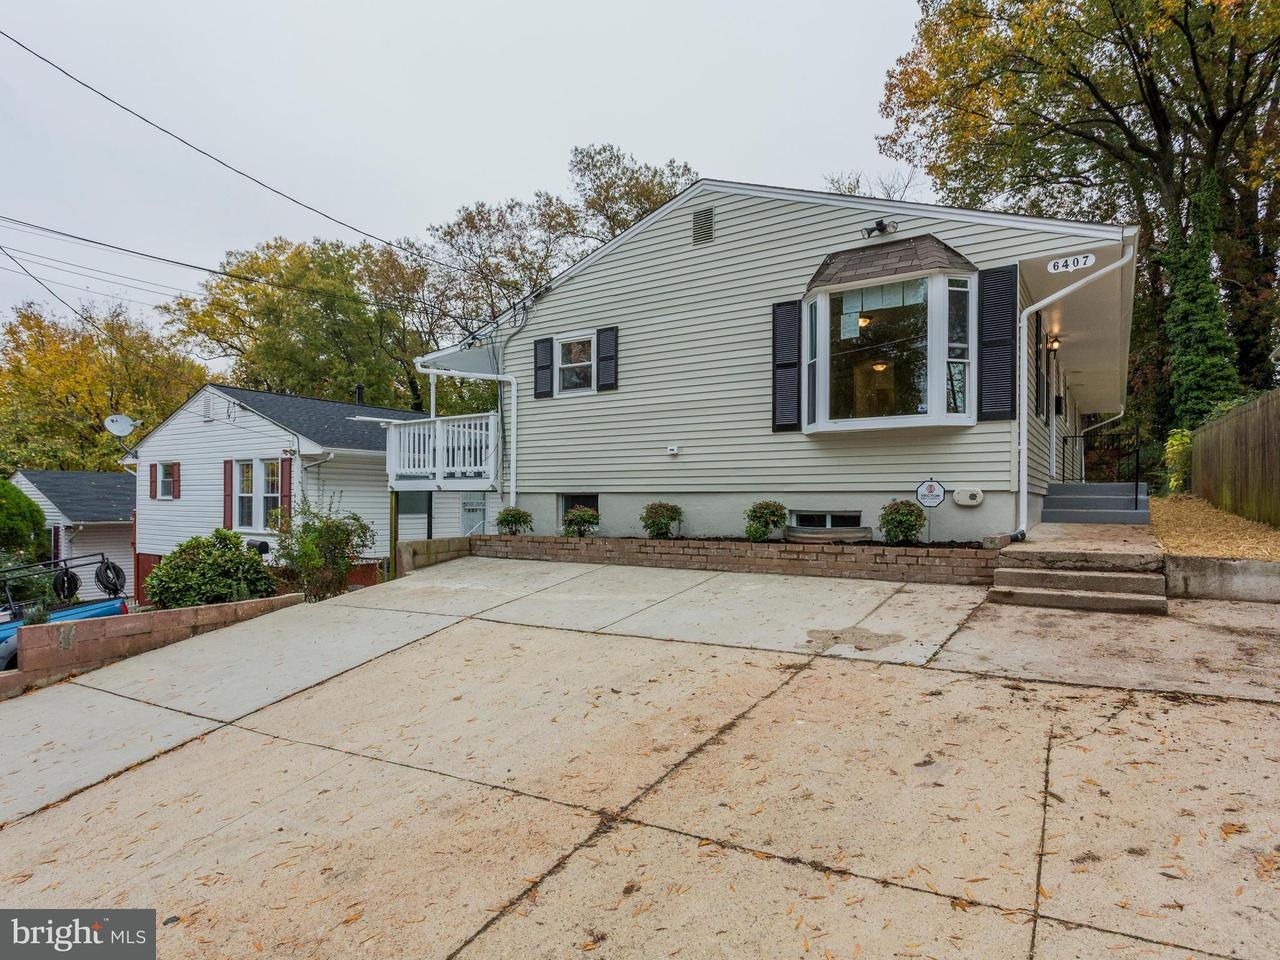 Single Family Home for Sale at 6407 5th Avenue 6407 5th Avenue Takoma Park, Maryland 20912 United States